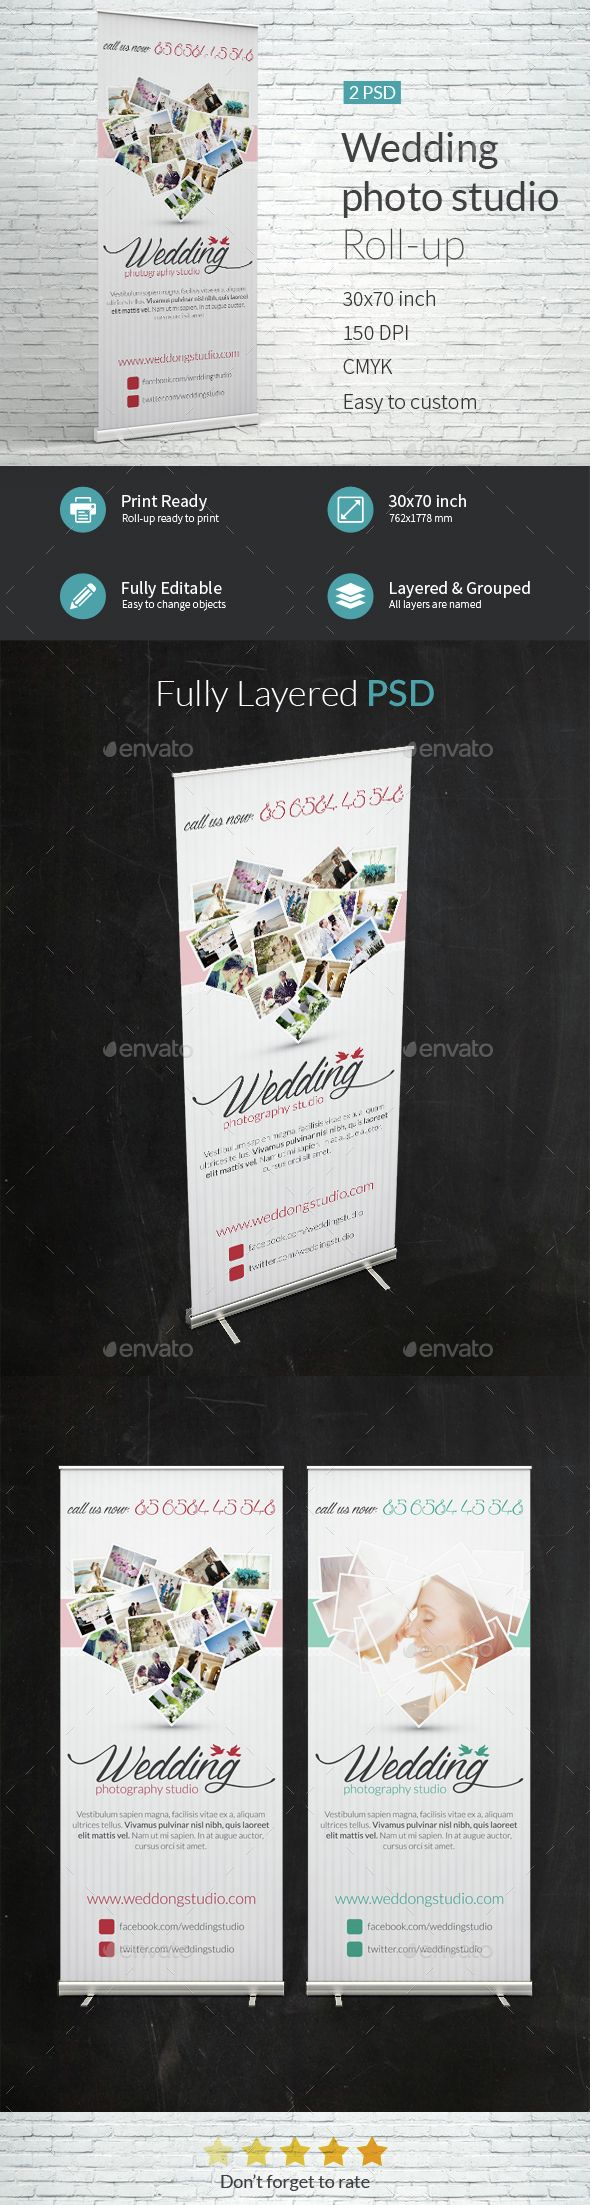 Wedding photo studio Roll-up Banner Template PSD. Download here ...